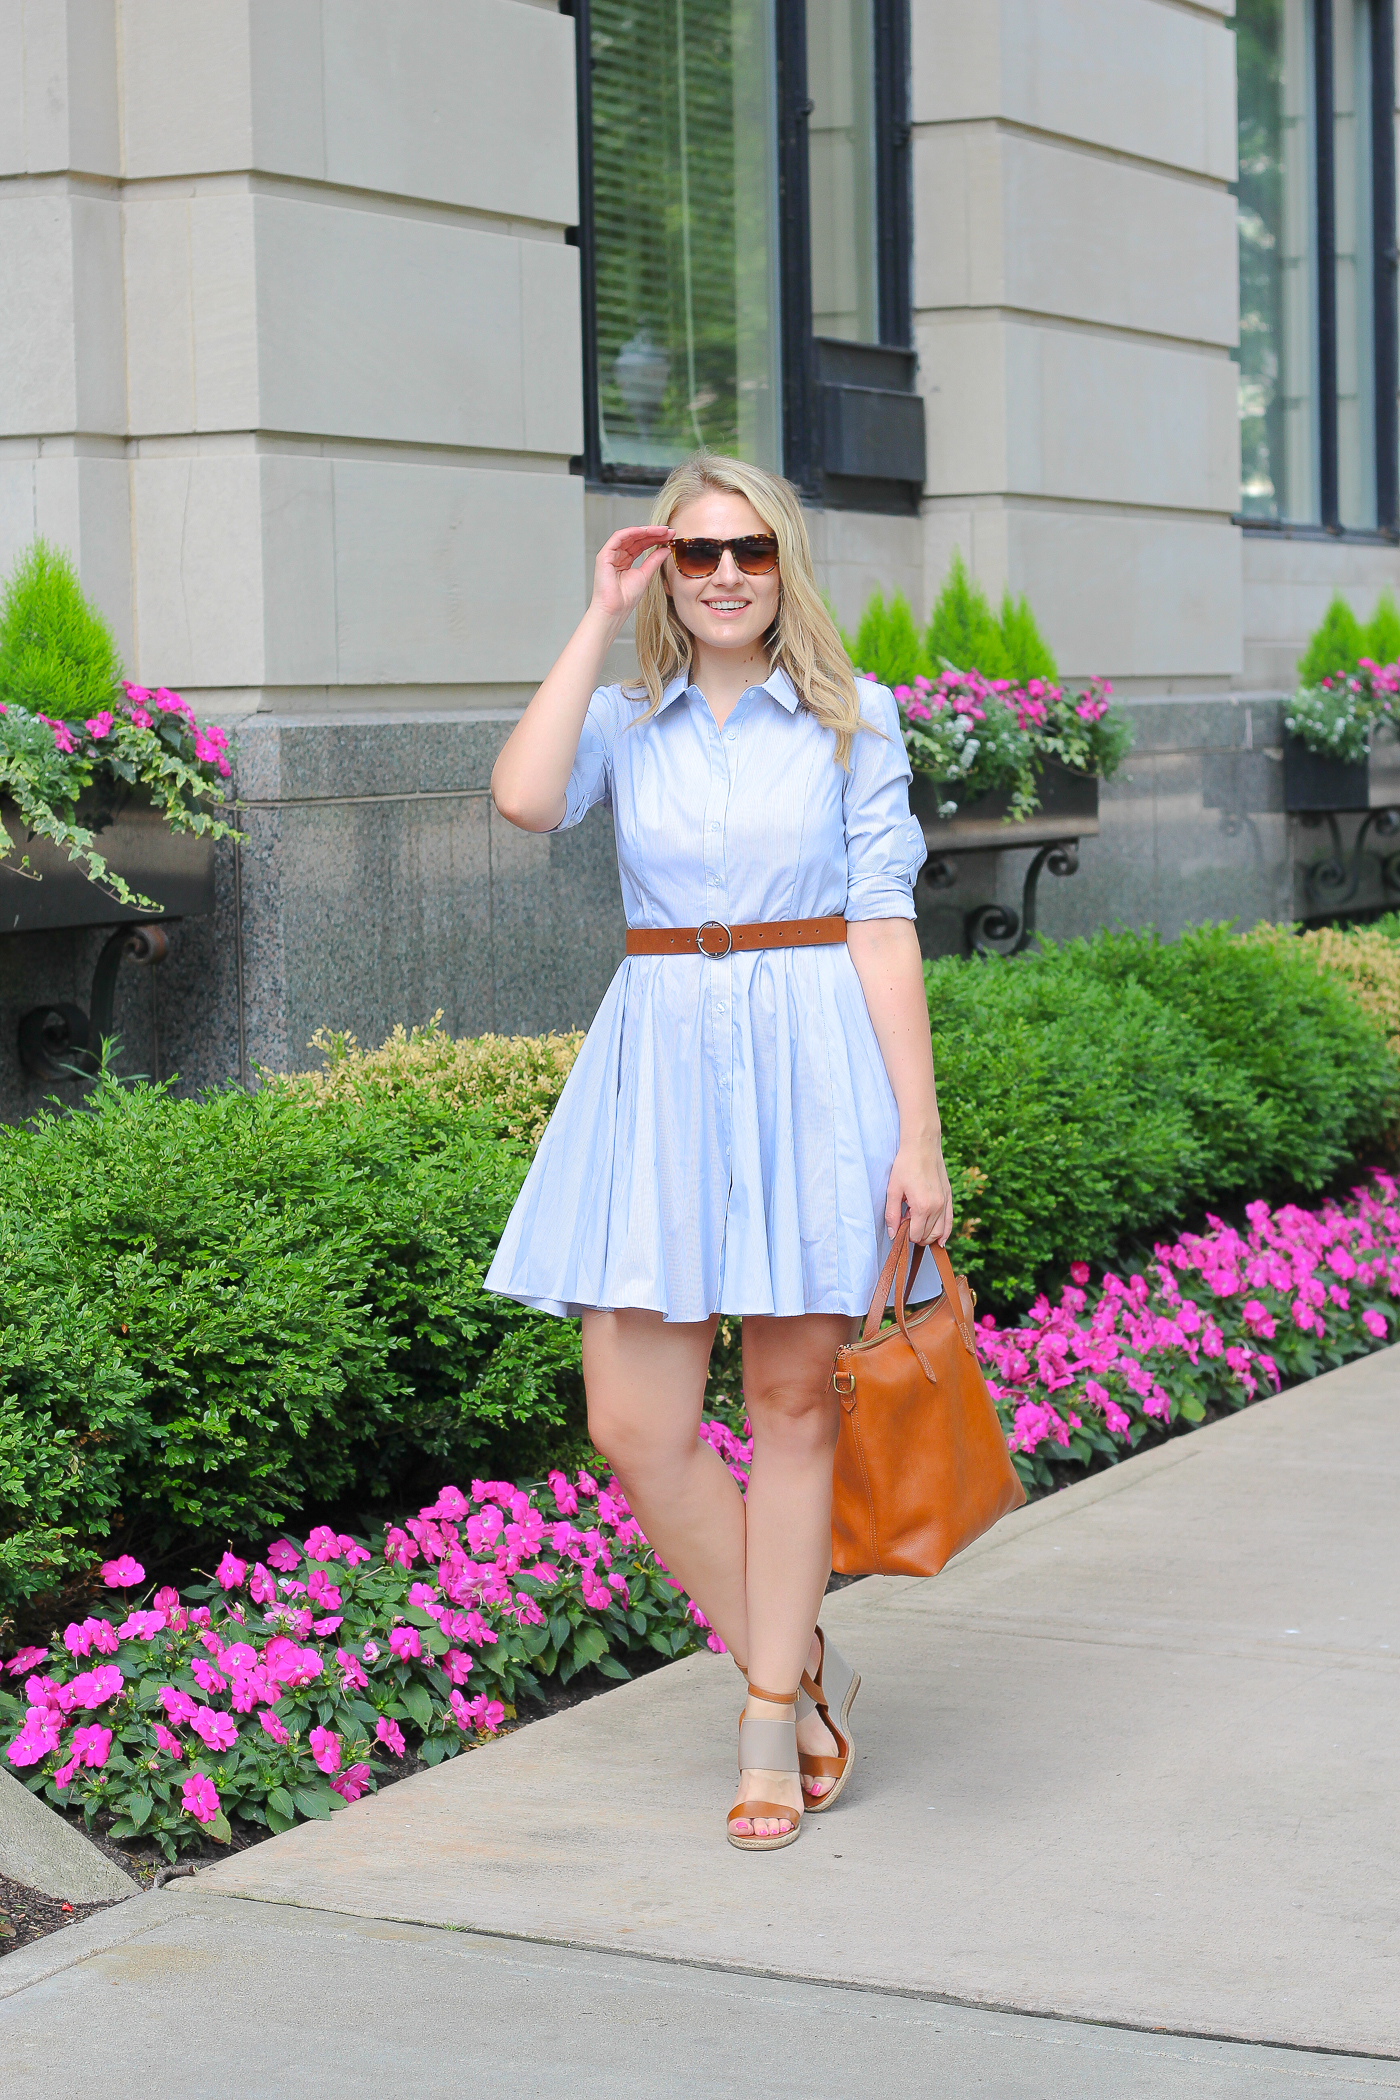 How to wear a buttoned down shirt dress to the office